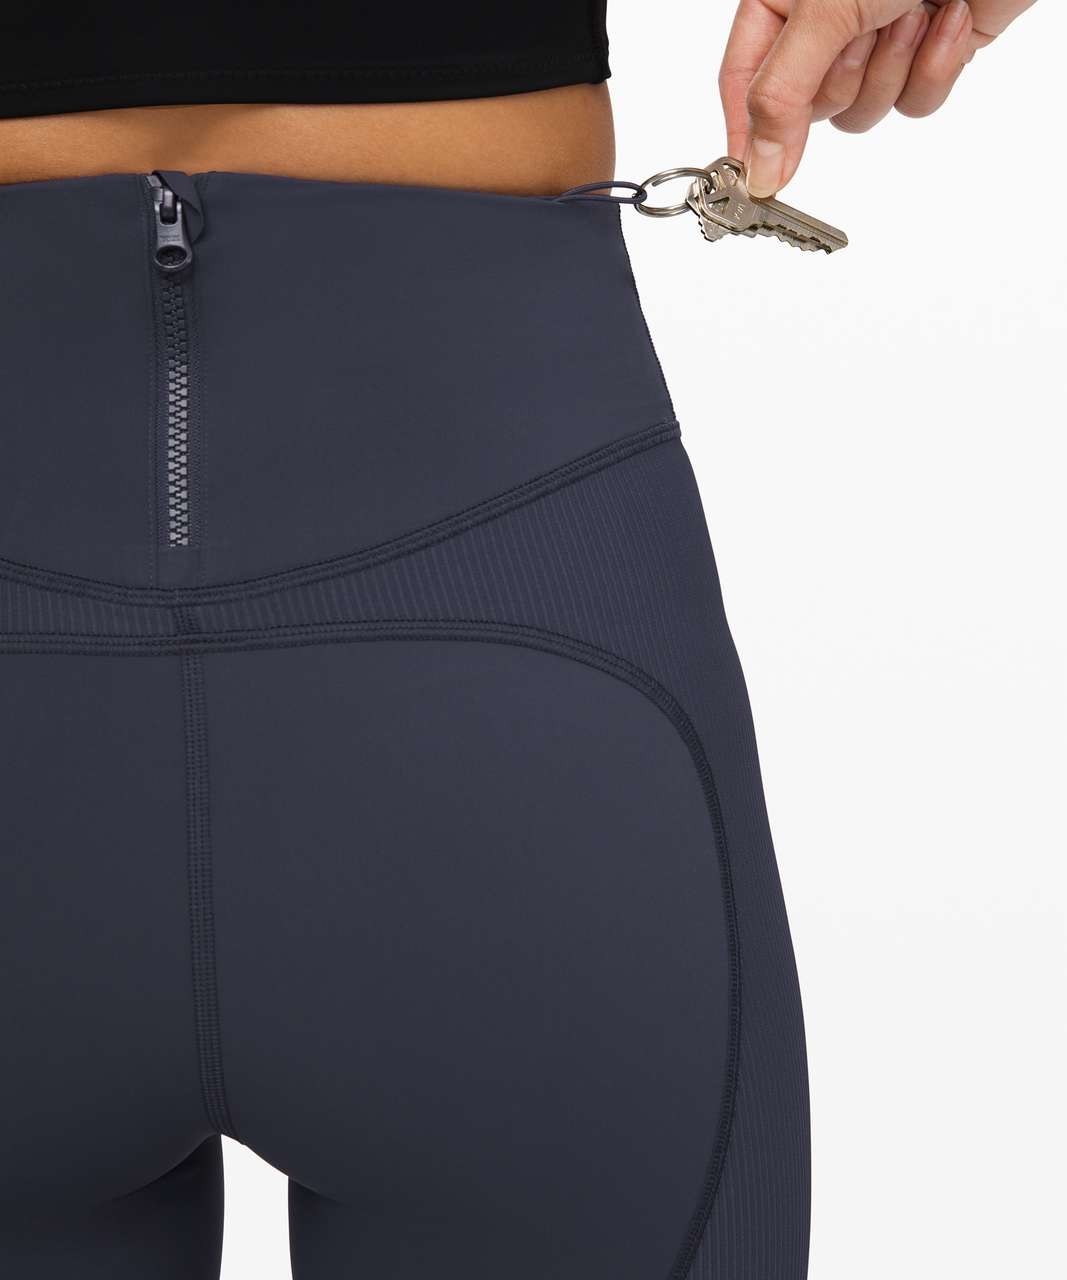 Lululemon Wade the Waters Paddle Tight - Stone Blue